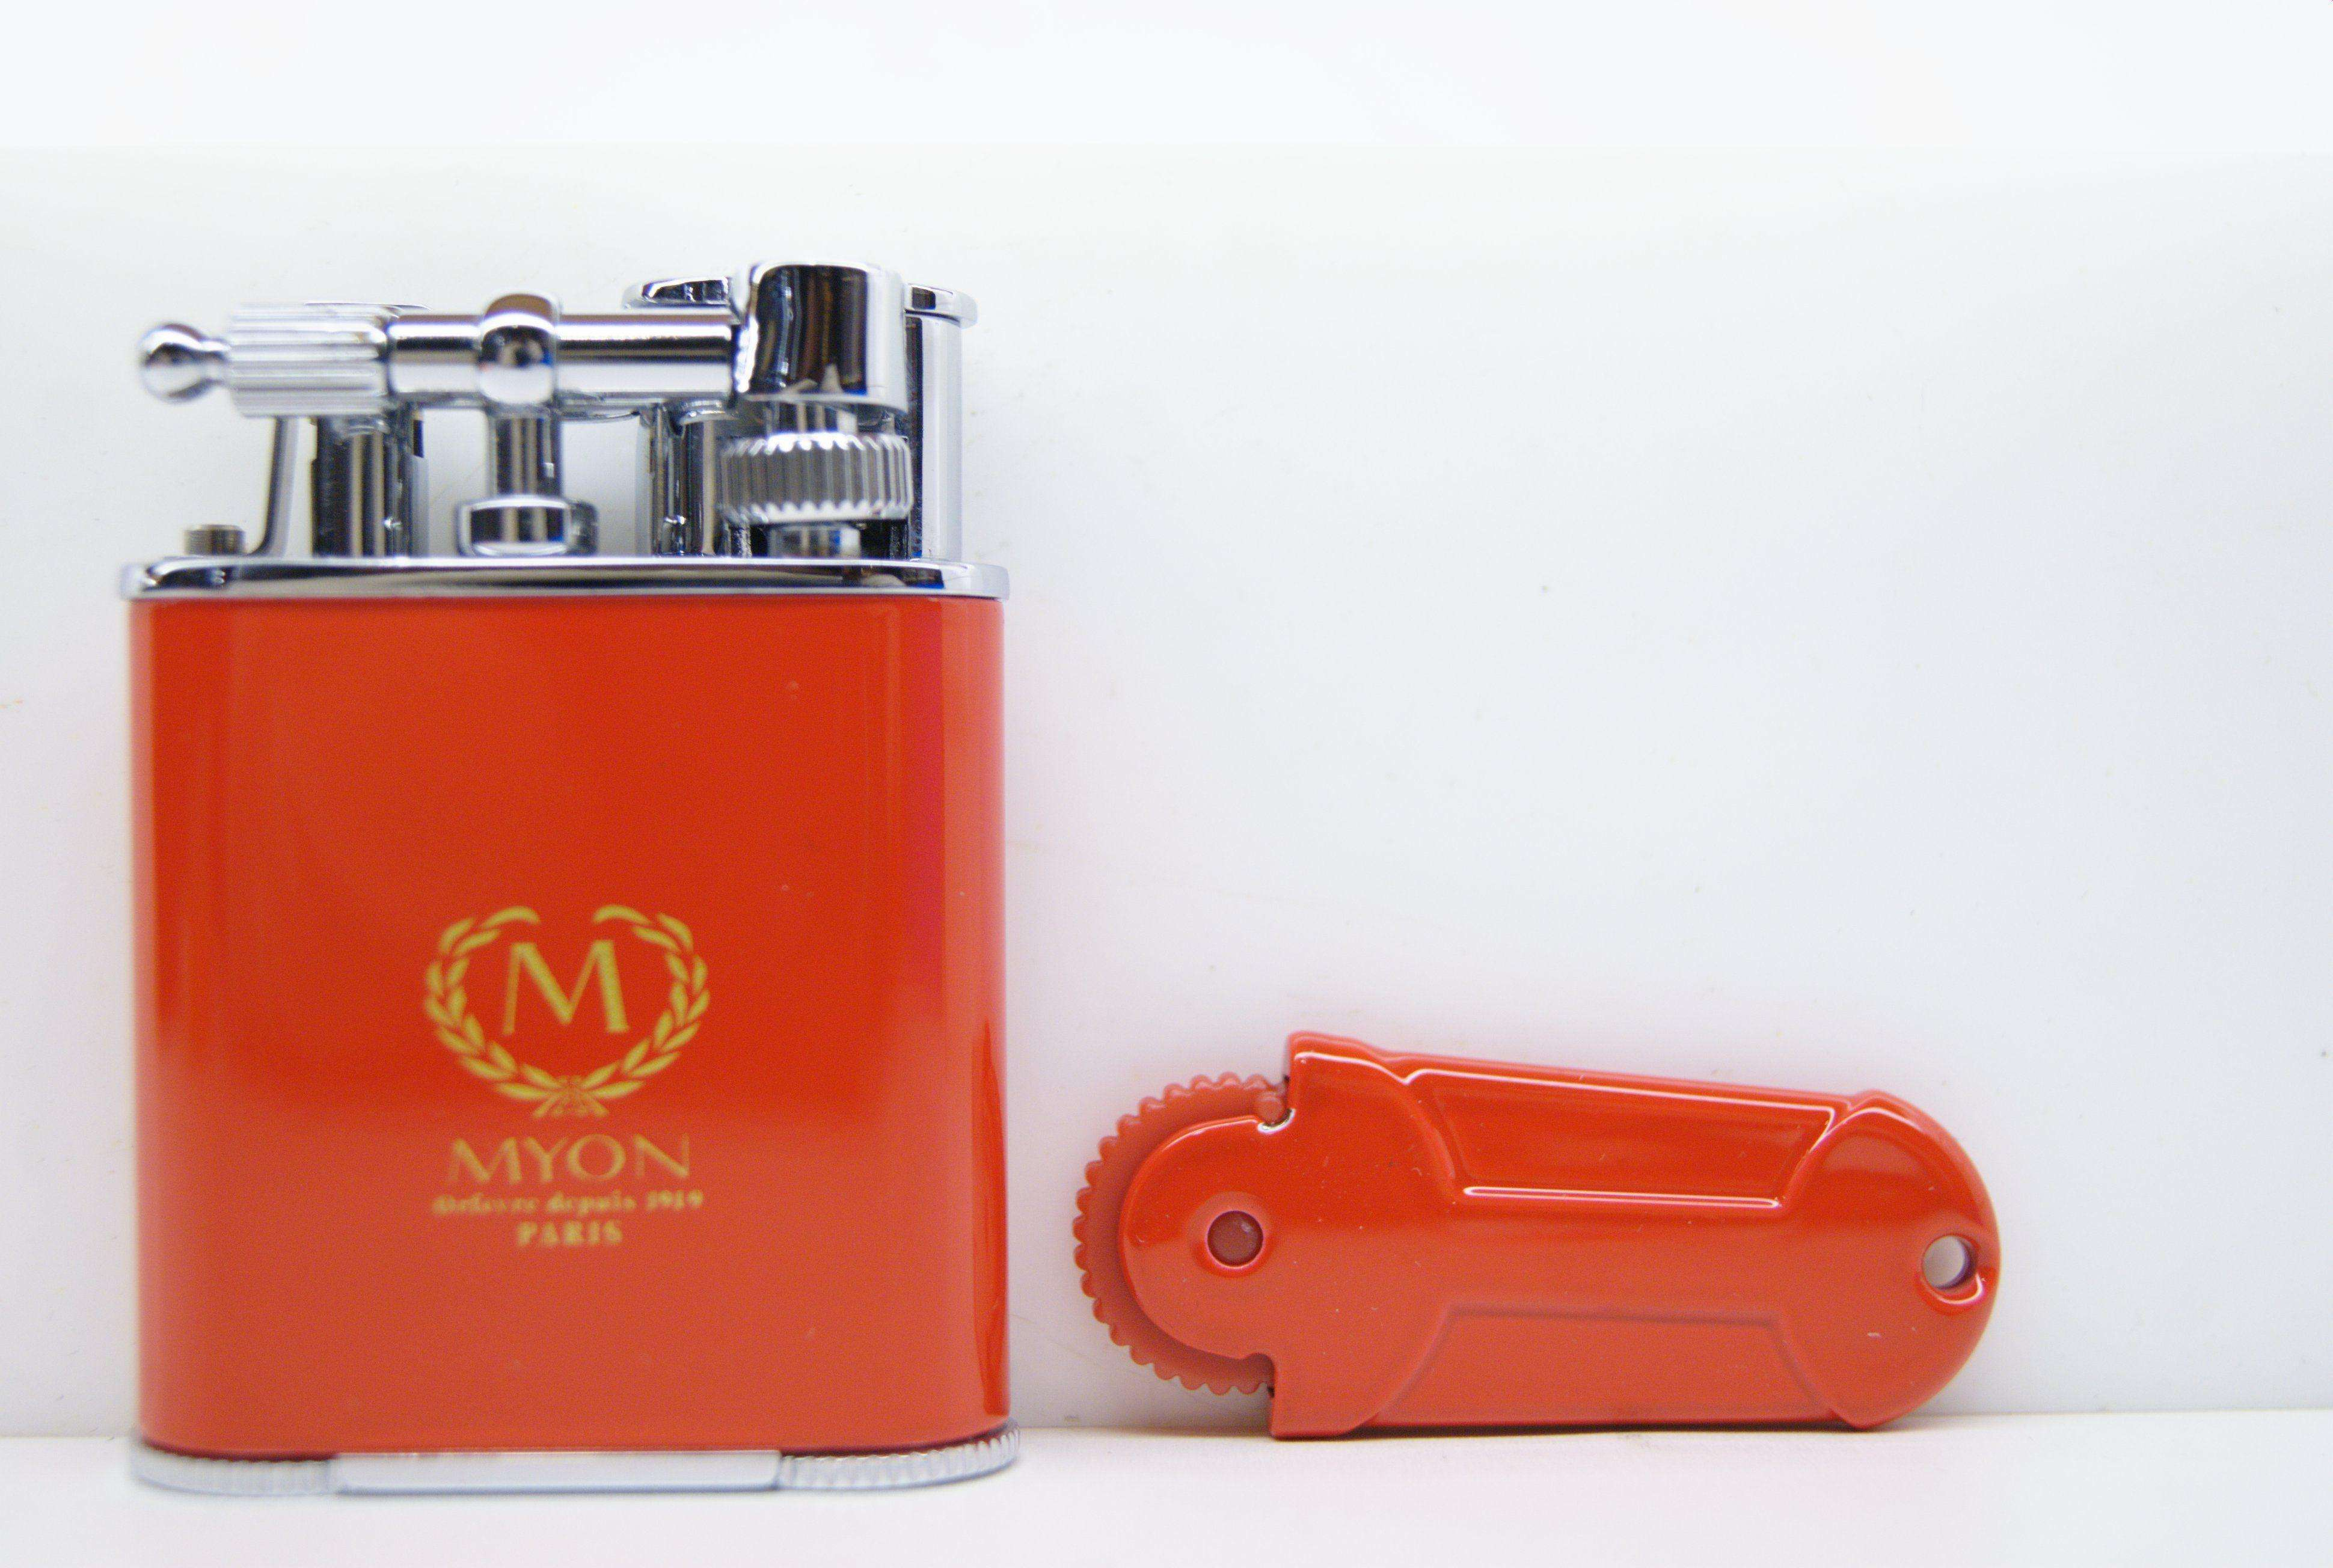 Myon double jet flint Lighter rosso